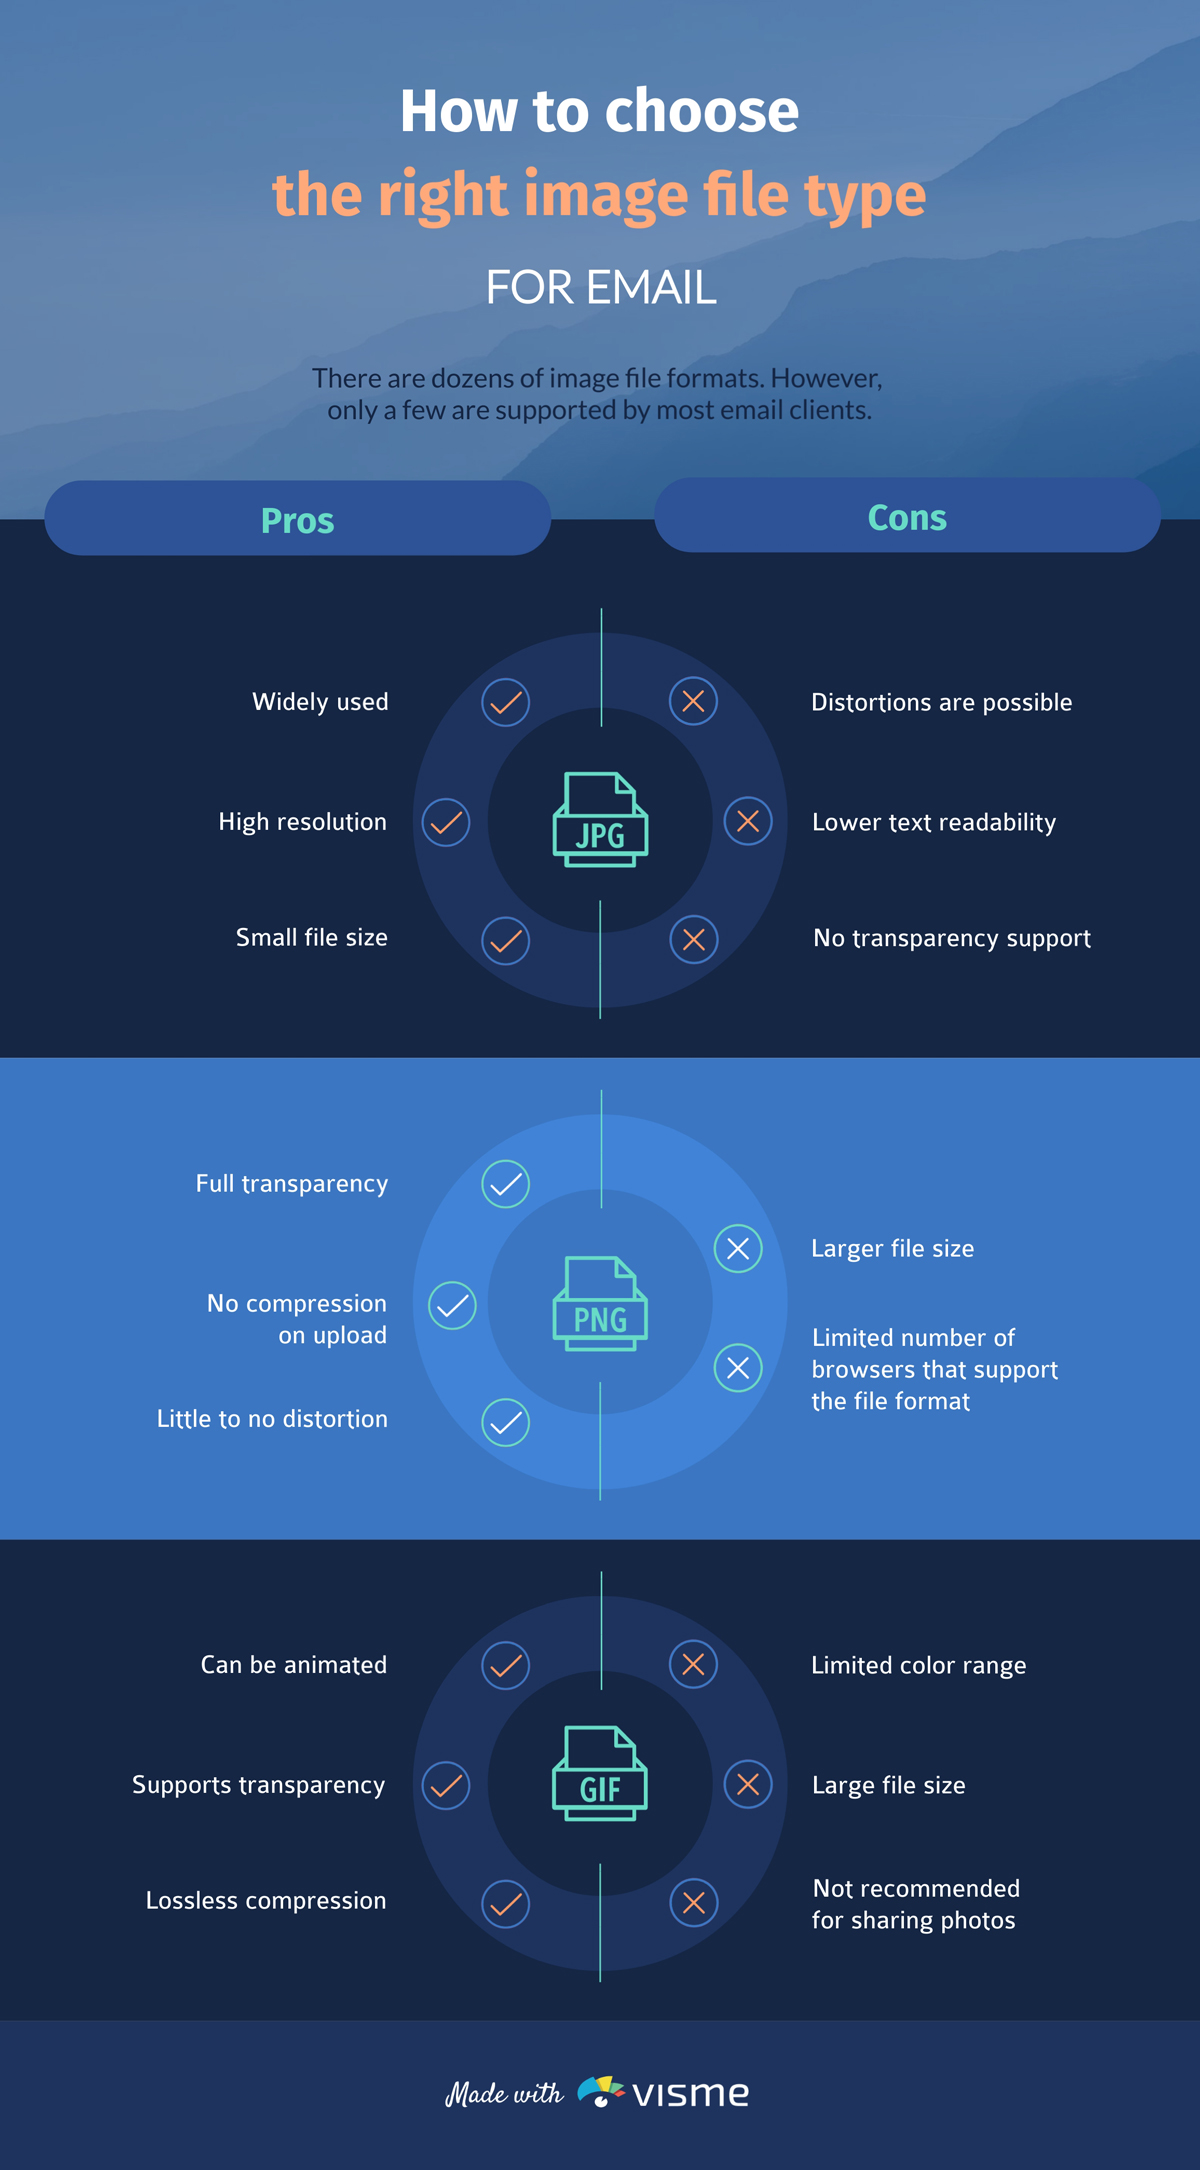 email images - image-file-type-infographic